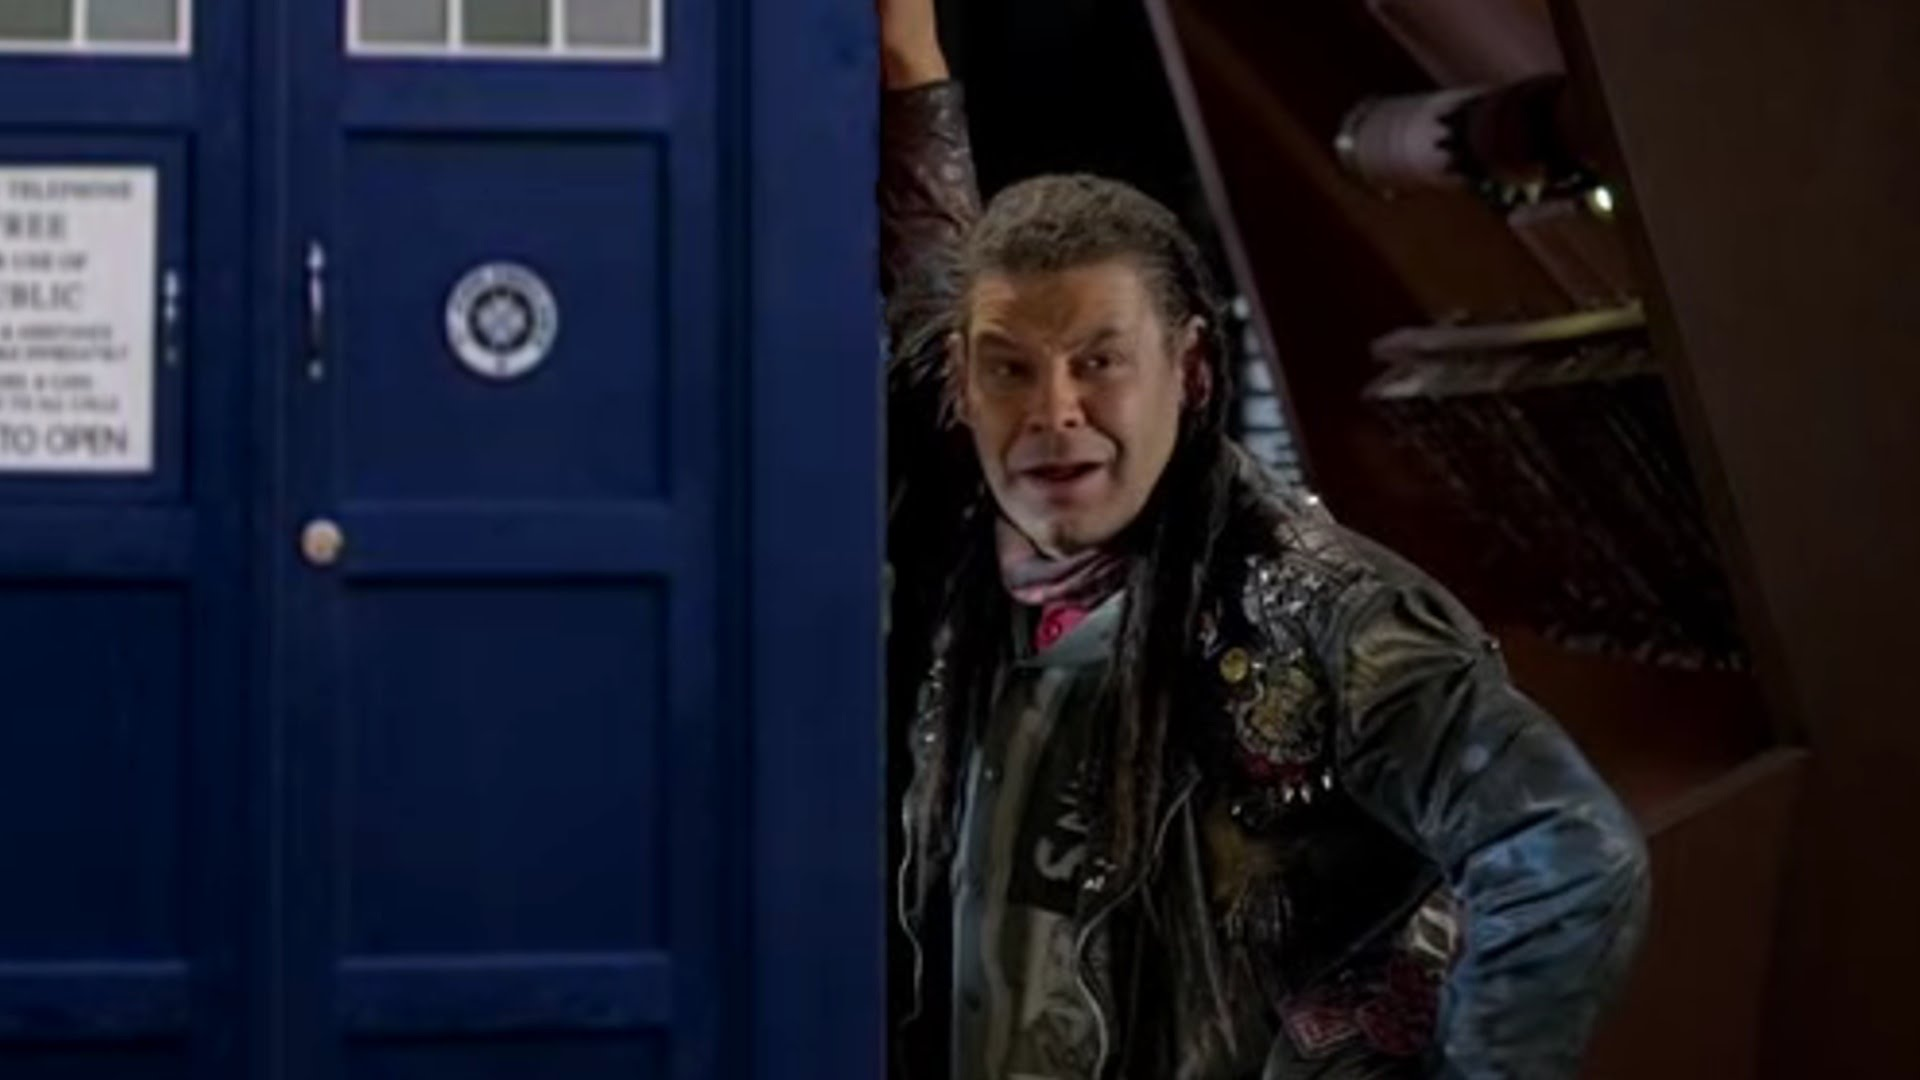 Doctor Who Red Dwarf crossover anyone